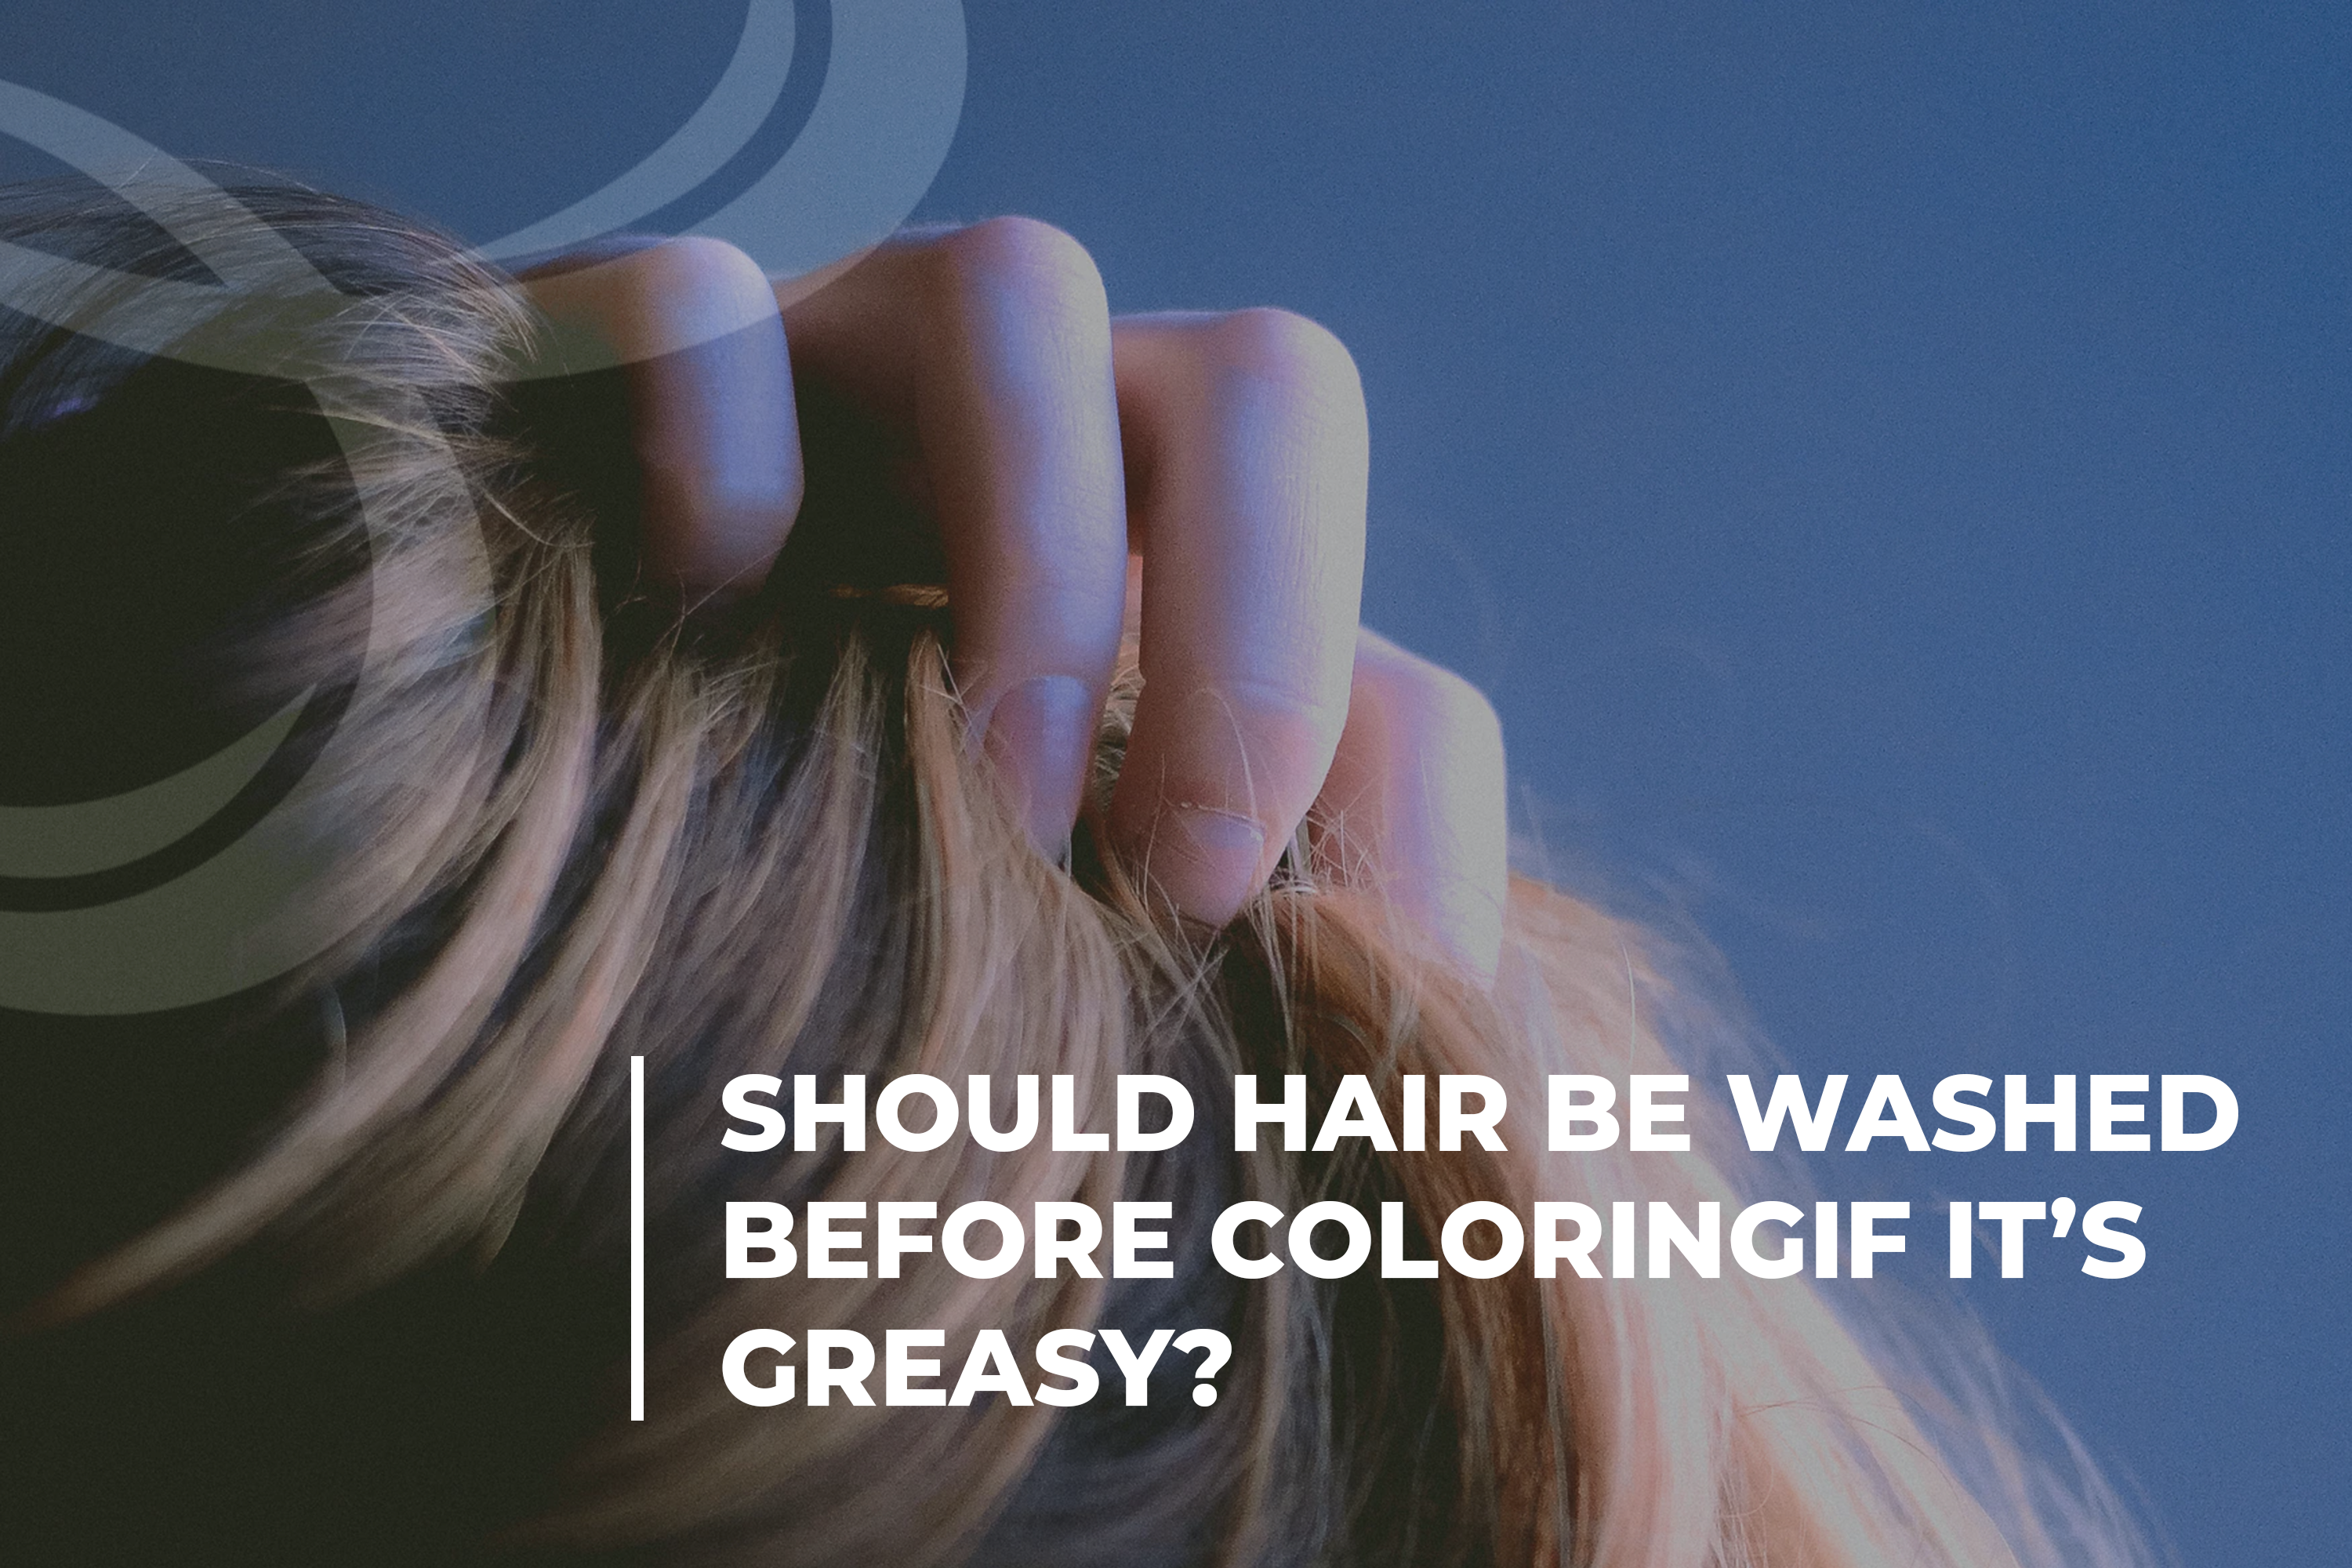 Should hair be washed before coloring if greasy